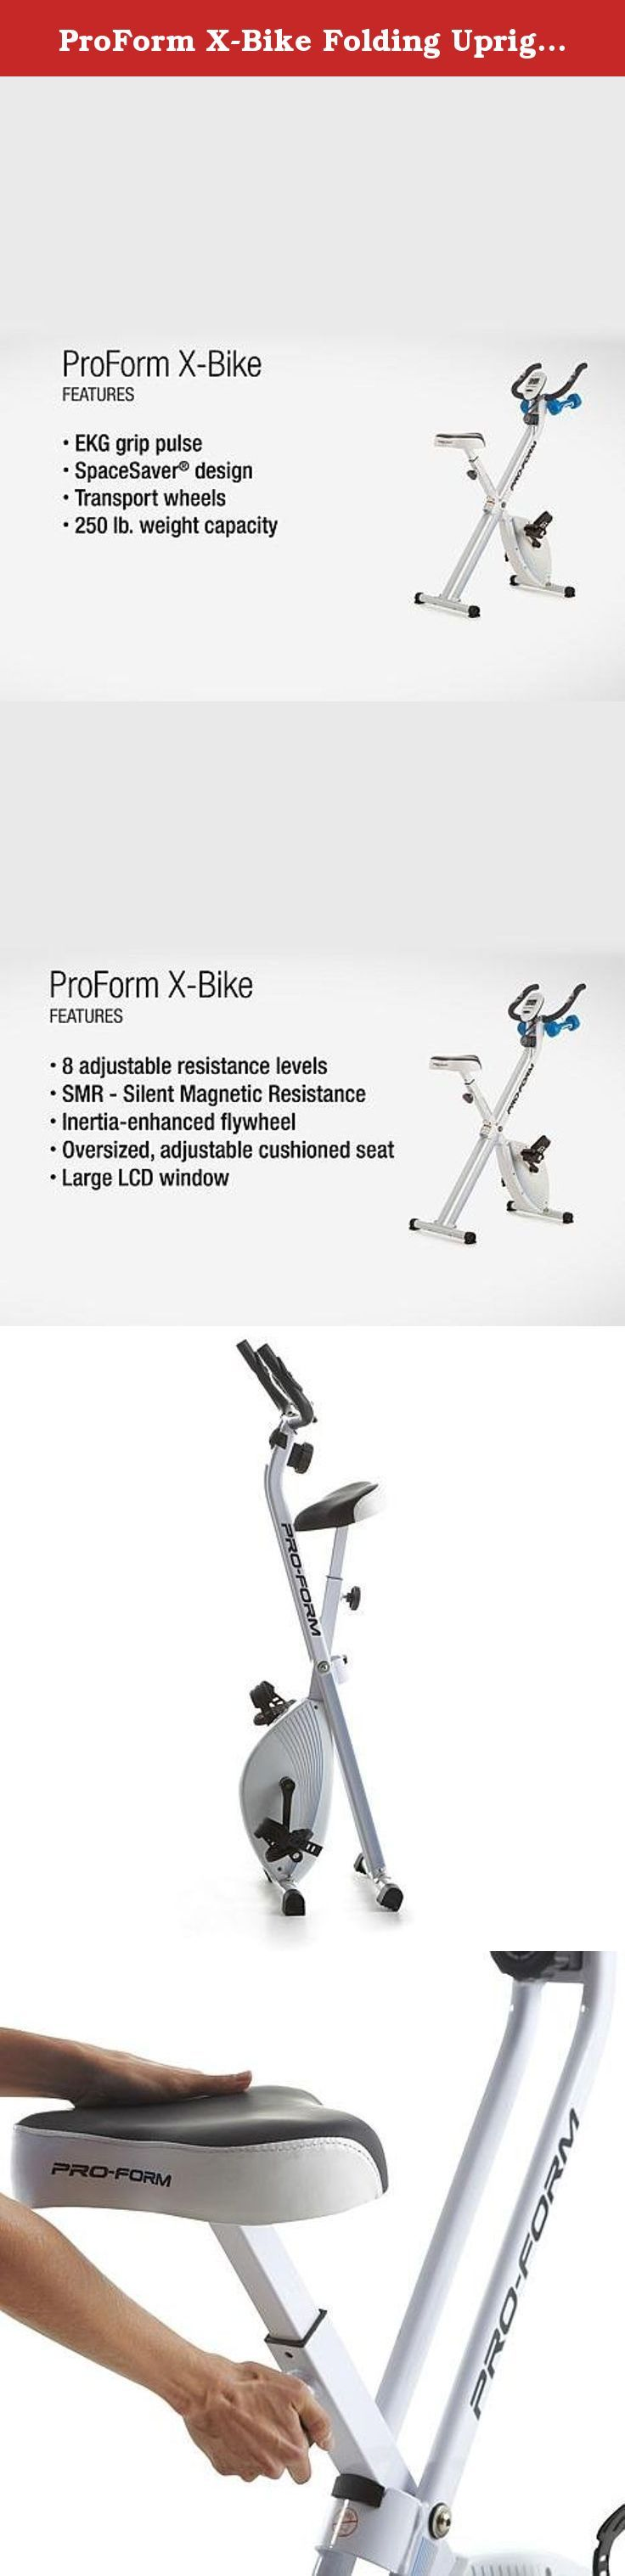 """ProForm X-Bike Folding Upright Bike with 2 lb. Weight Set. Been searching for your personal fitness solution? """"X"""" marks the spot with this compact upright bike that turns any space into your own workout area and folds away for easy storage. Adjustable resistance and hand weights help you maximize the exercise benefits while comfort-minded features make looking good a real pleasure. Guess finding your inner sexy wasn't so hard, after all."""